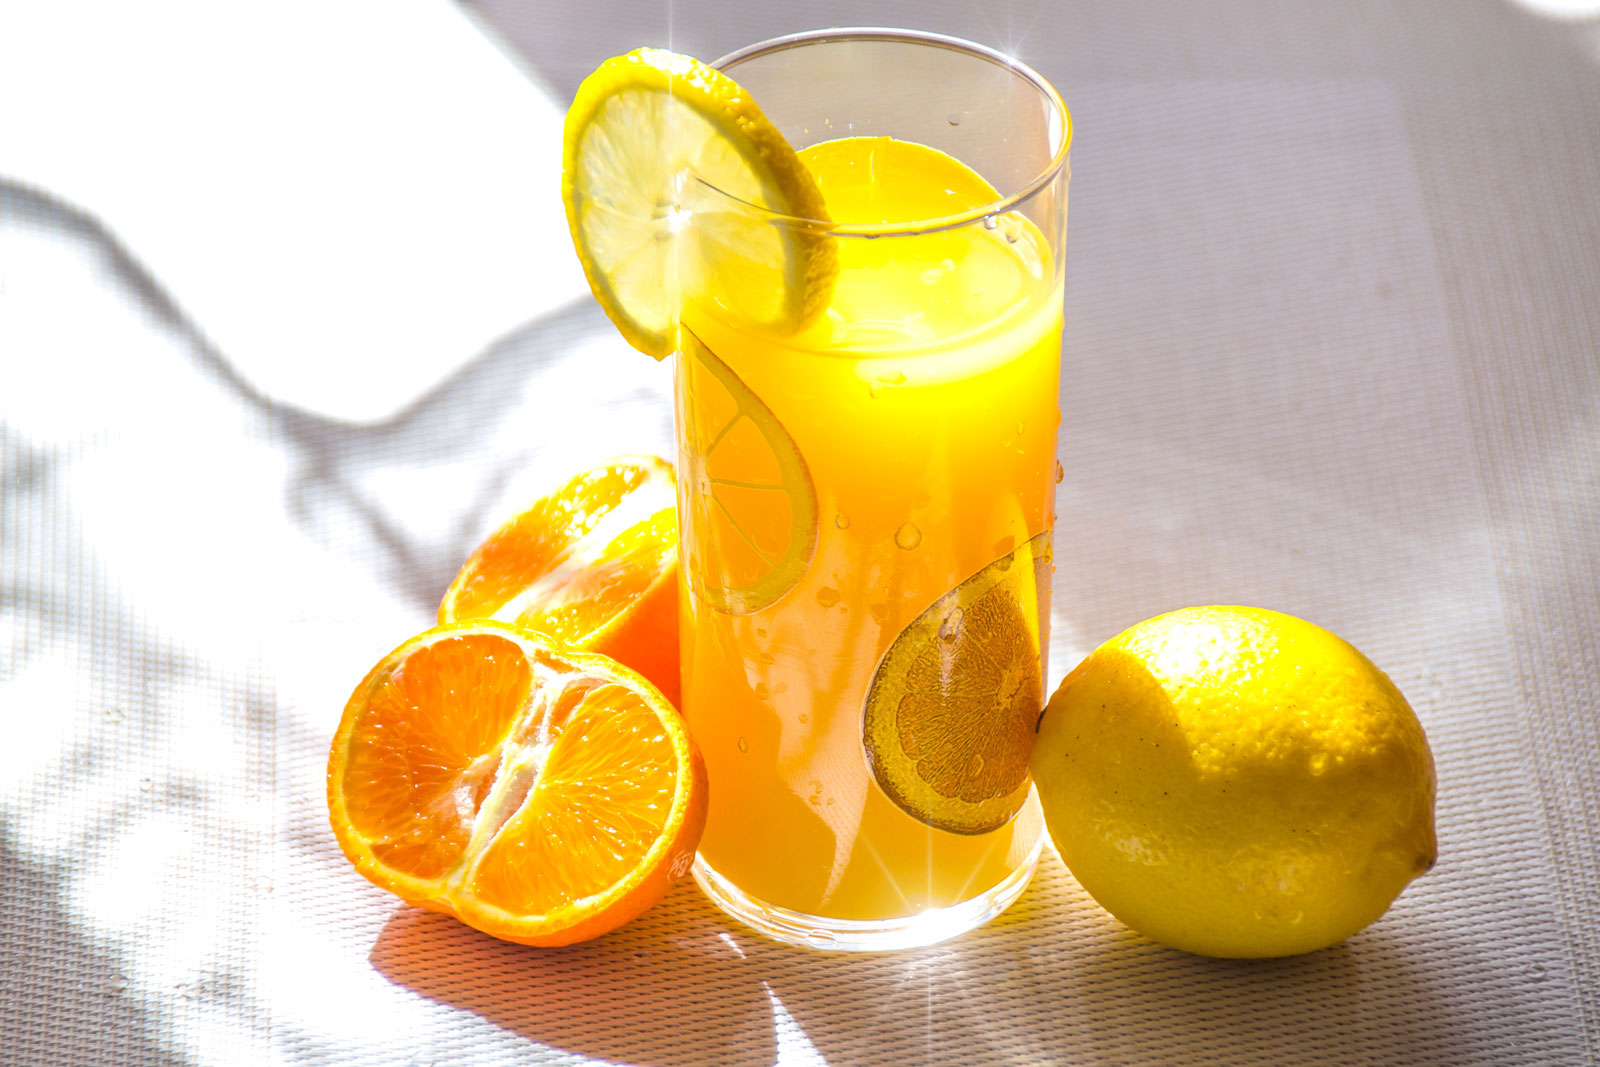 Orange Juice | 5 Main Benefits Of A Juice Cleanse & How To Get Started